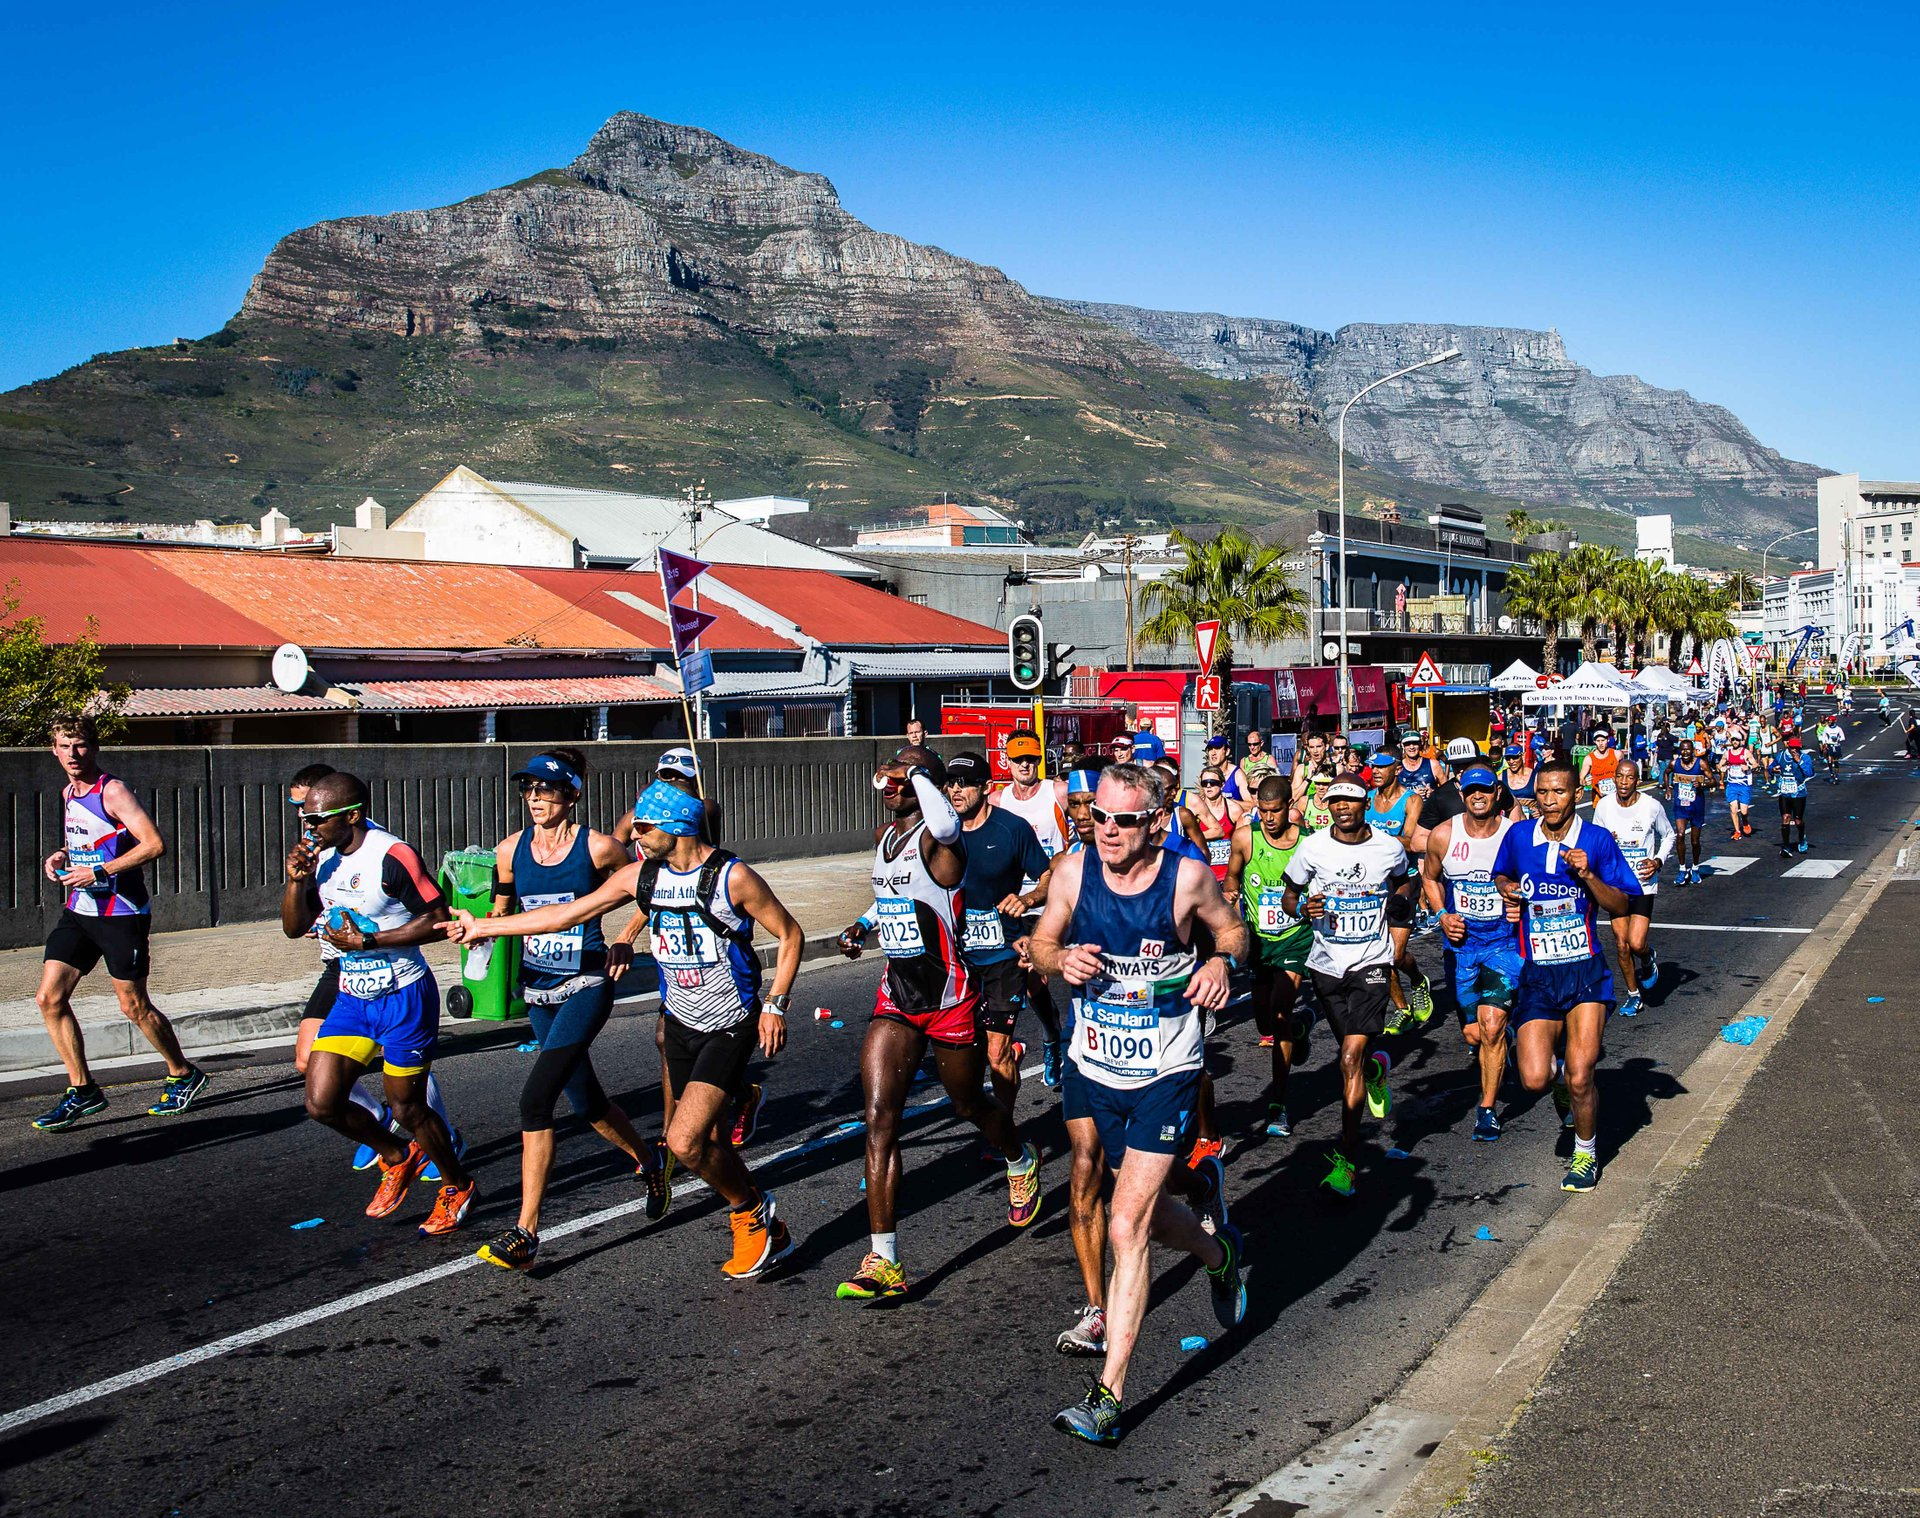 Sanlam Cape Town Marathon in Cape Town - Best Season